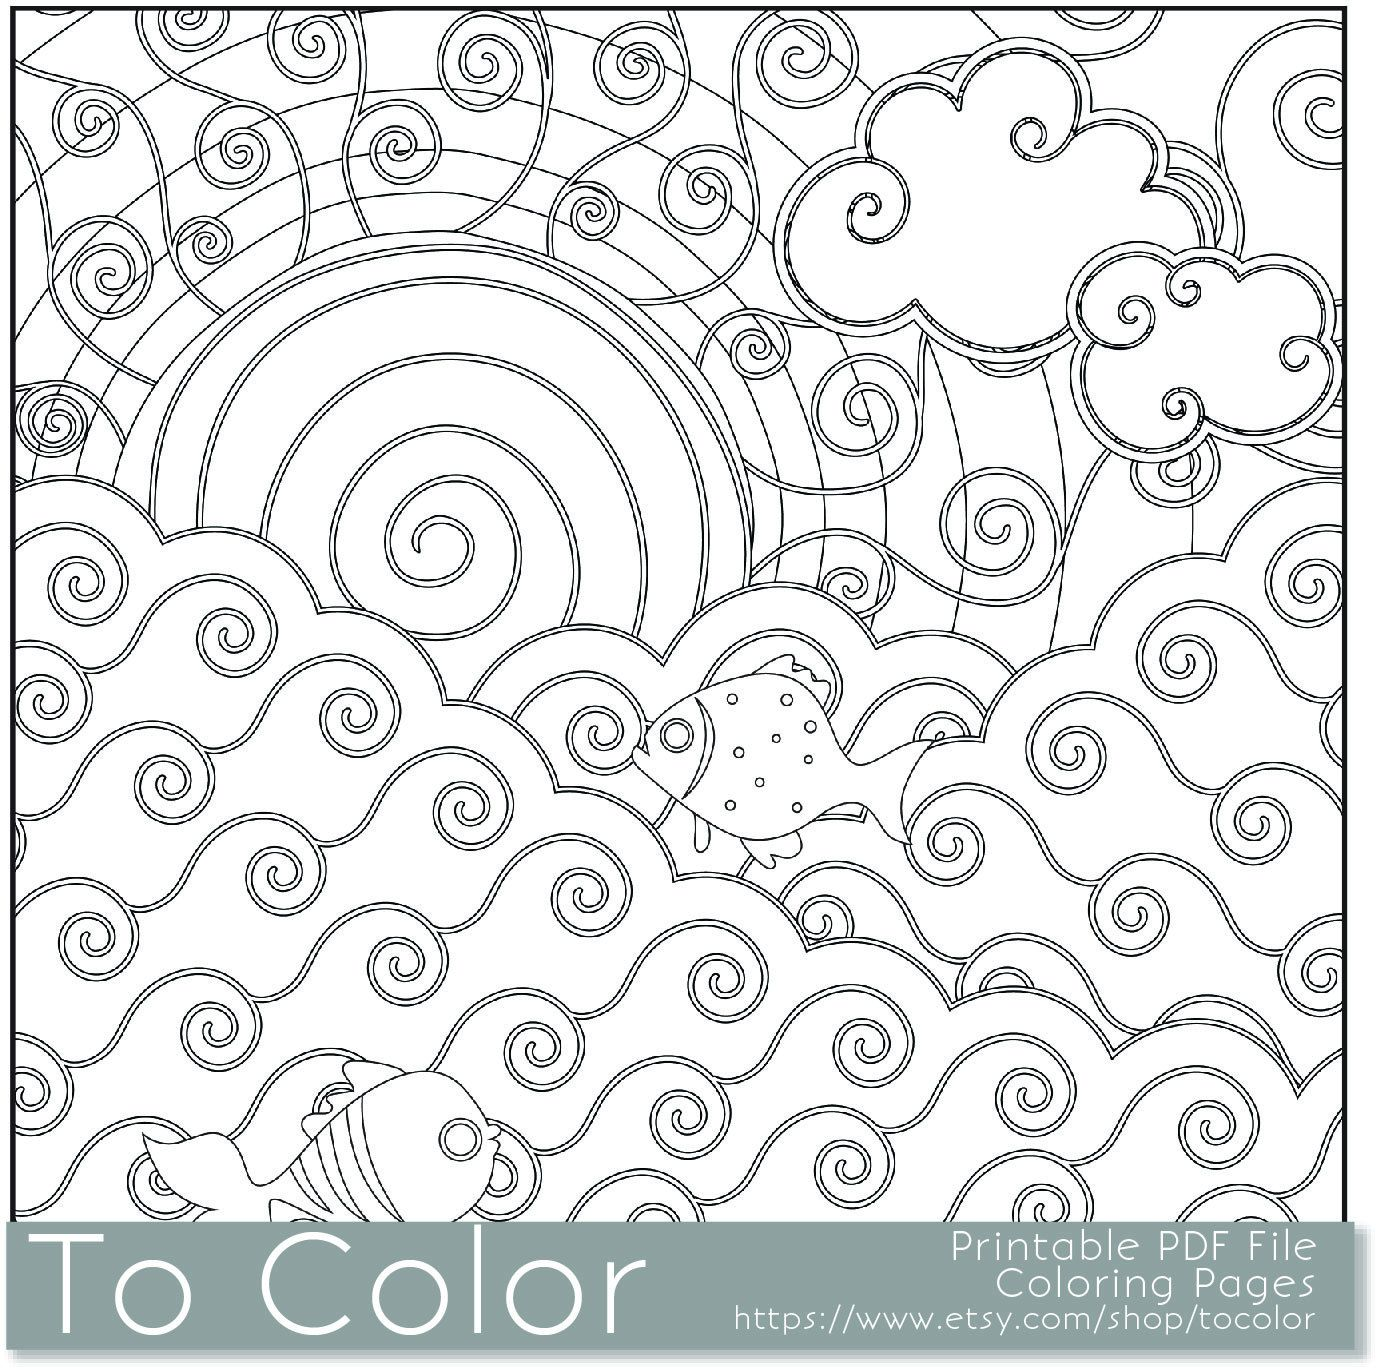 Items Similar To Printable Coloring Page For Adults And Kids PDF